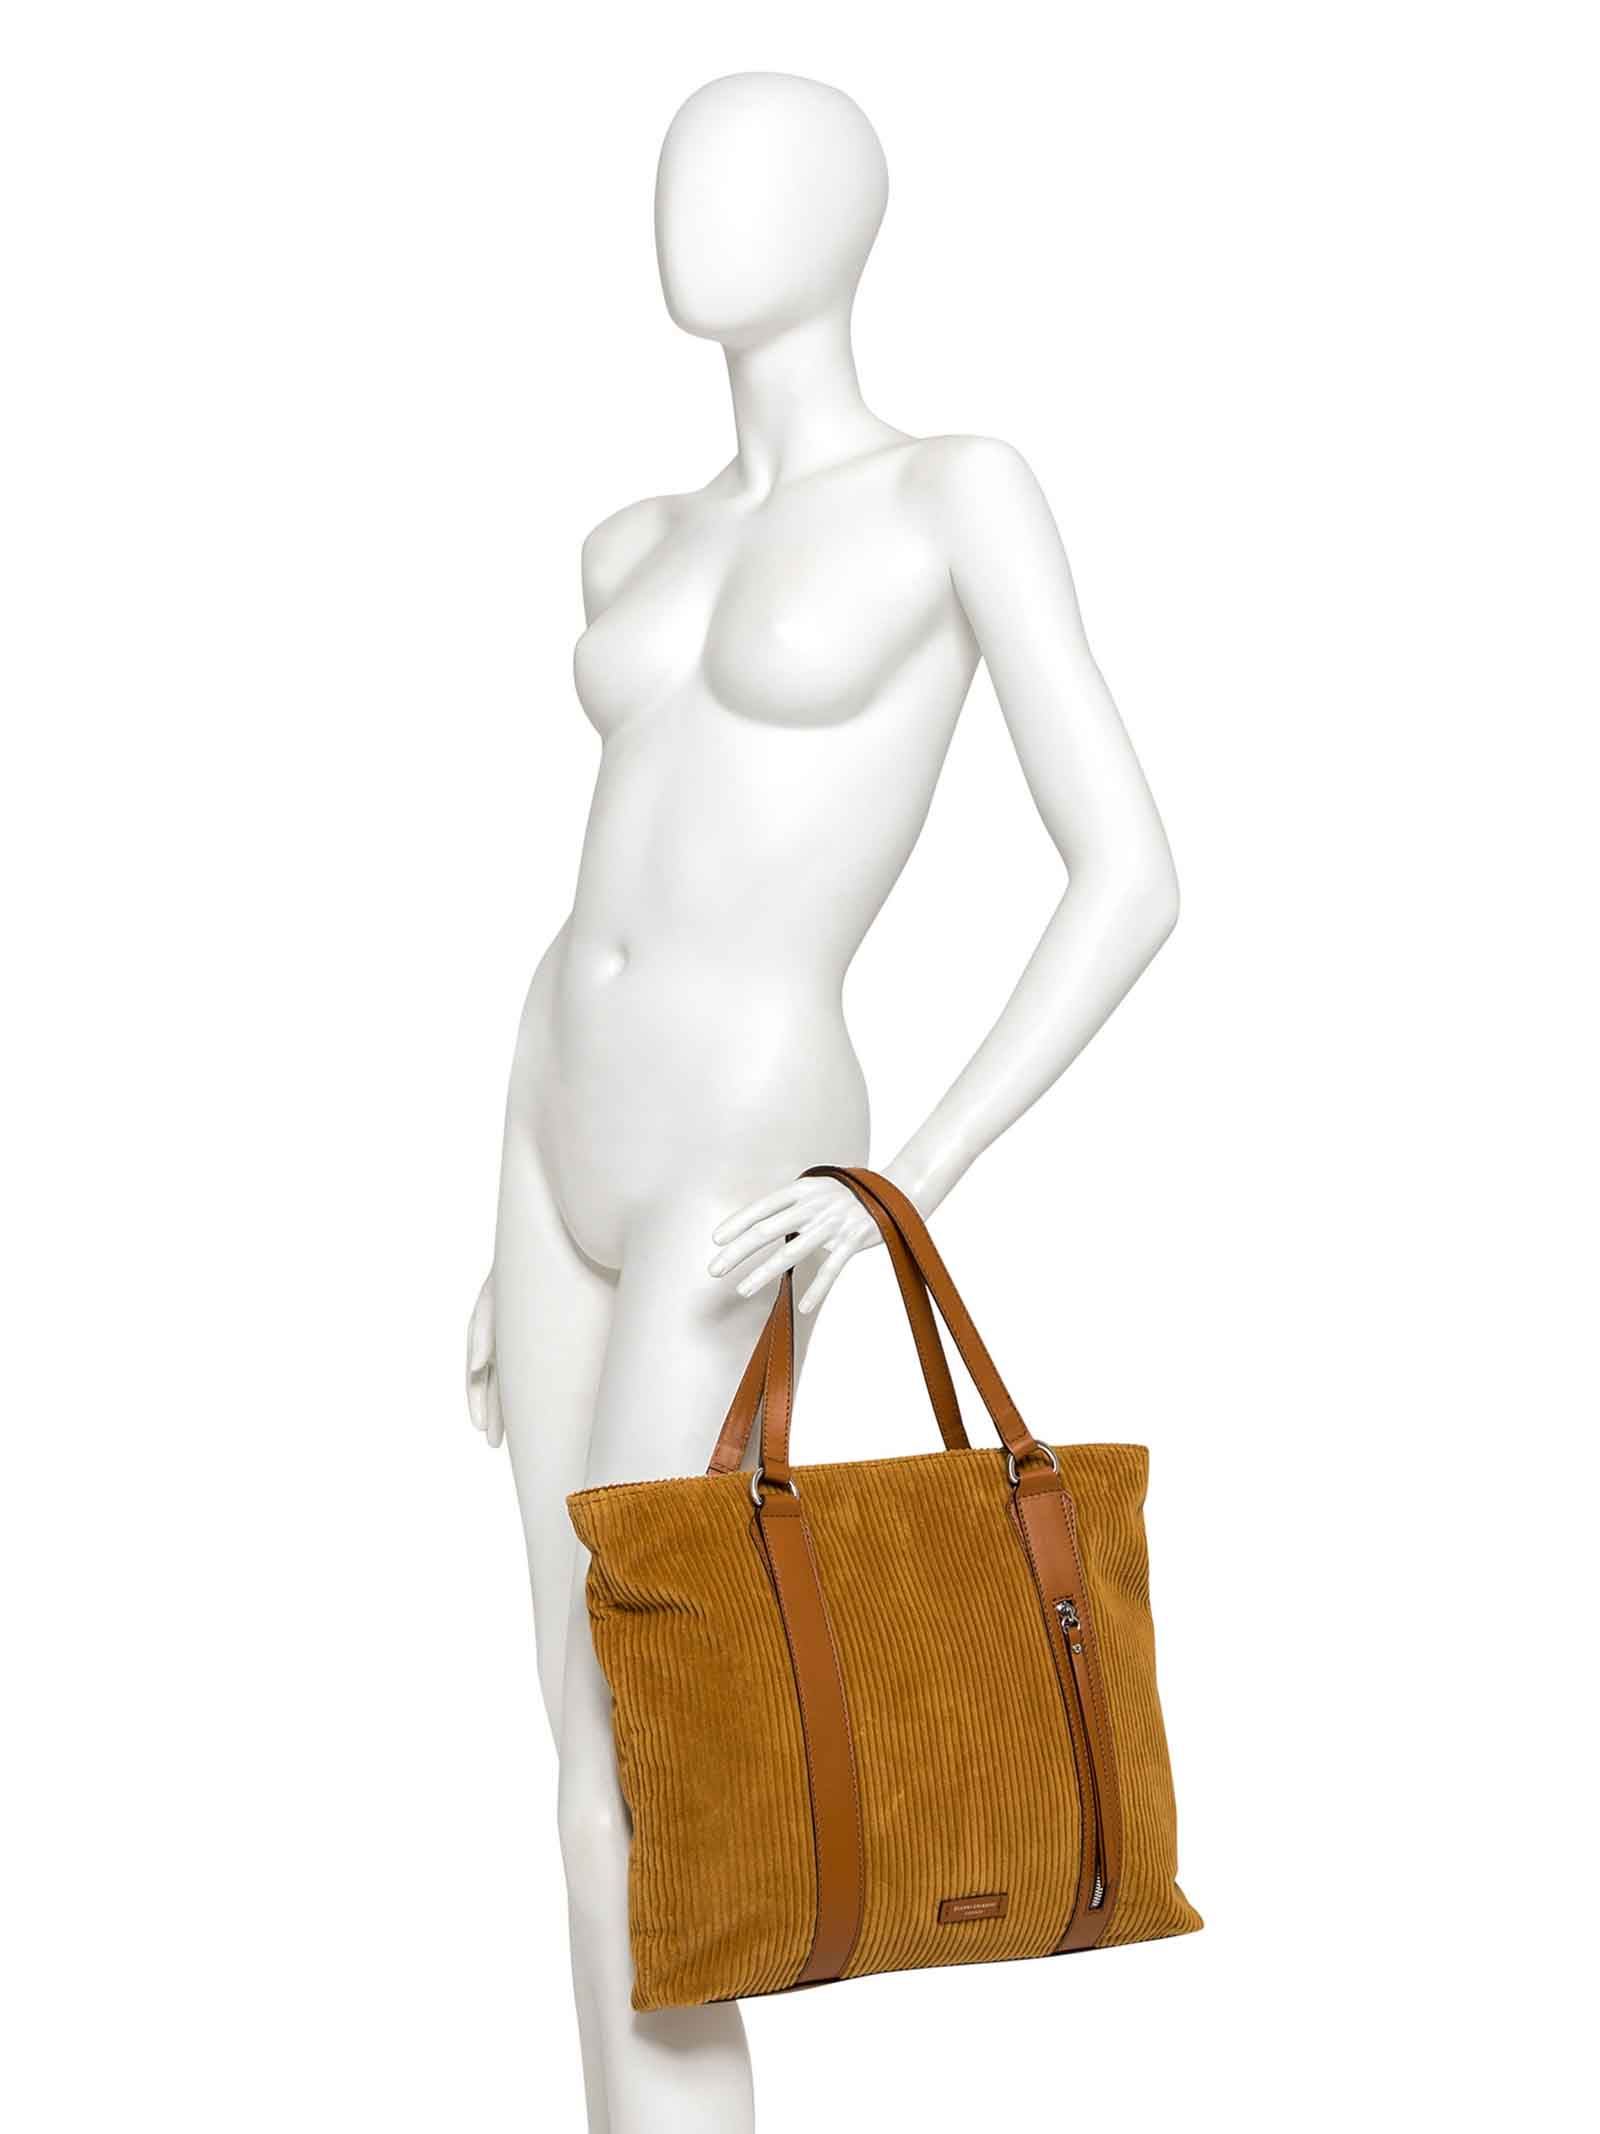 Women's Shopping Bag Glenn in Tan Velvet with Matching Leather Inserts and Double Shoulder Handles Gianni Chiarini | Bags and backpacks | BS934511130